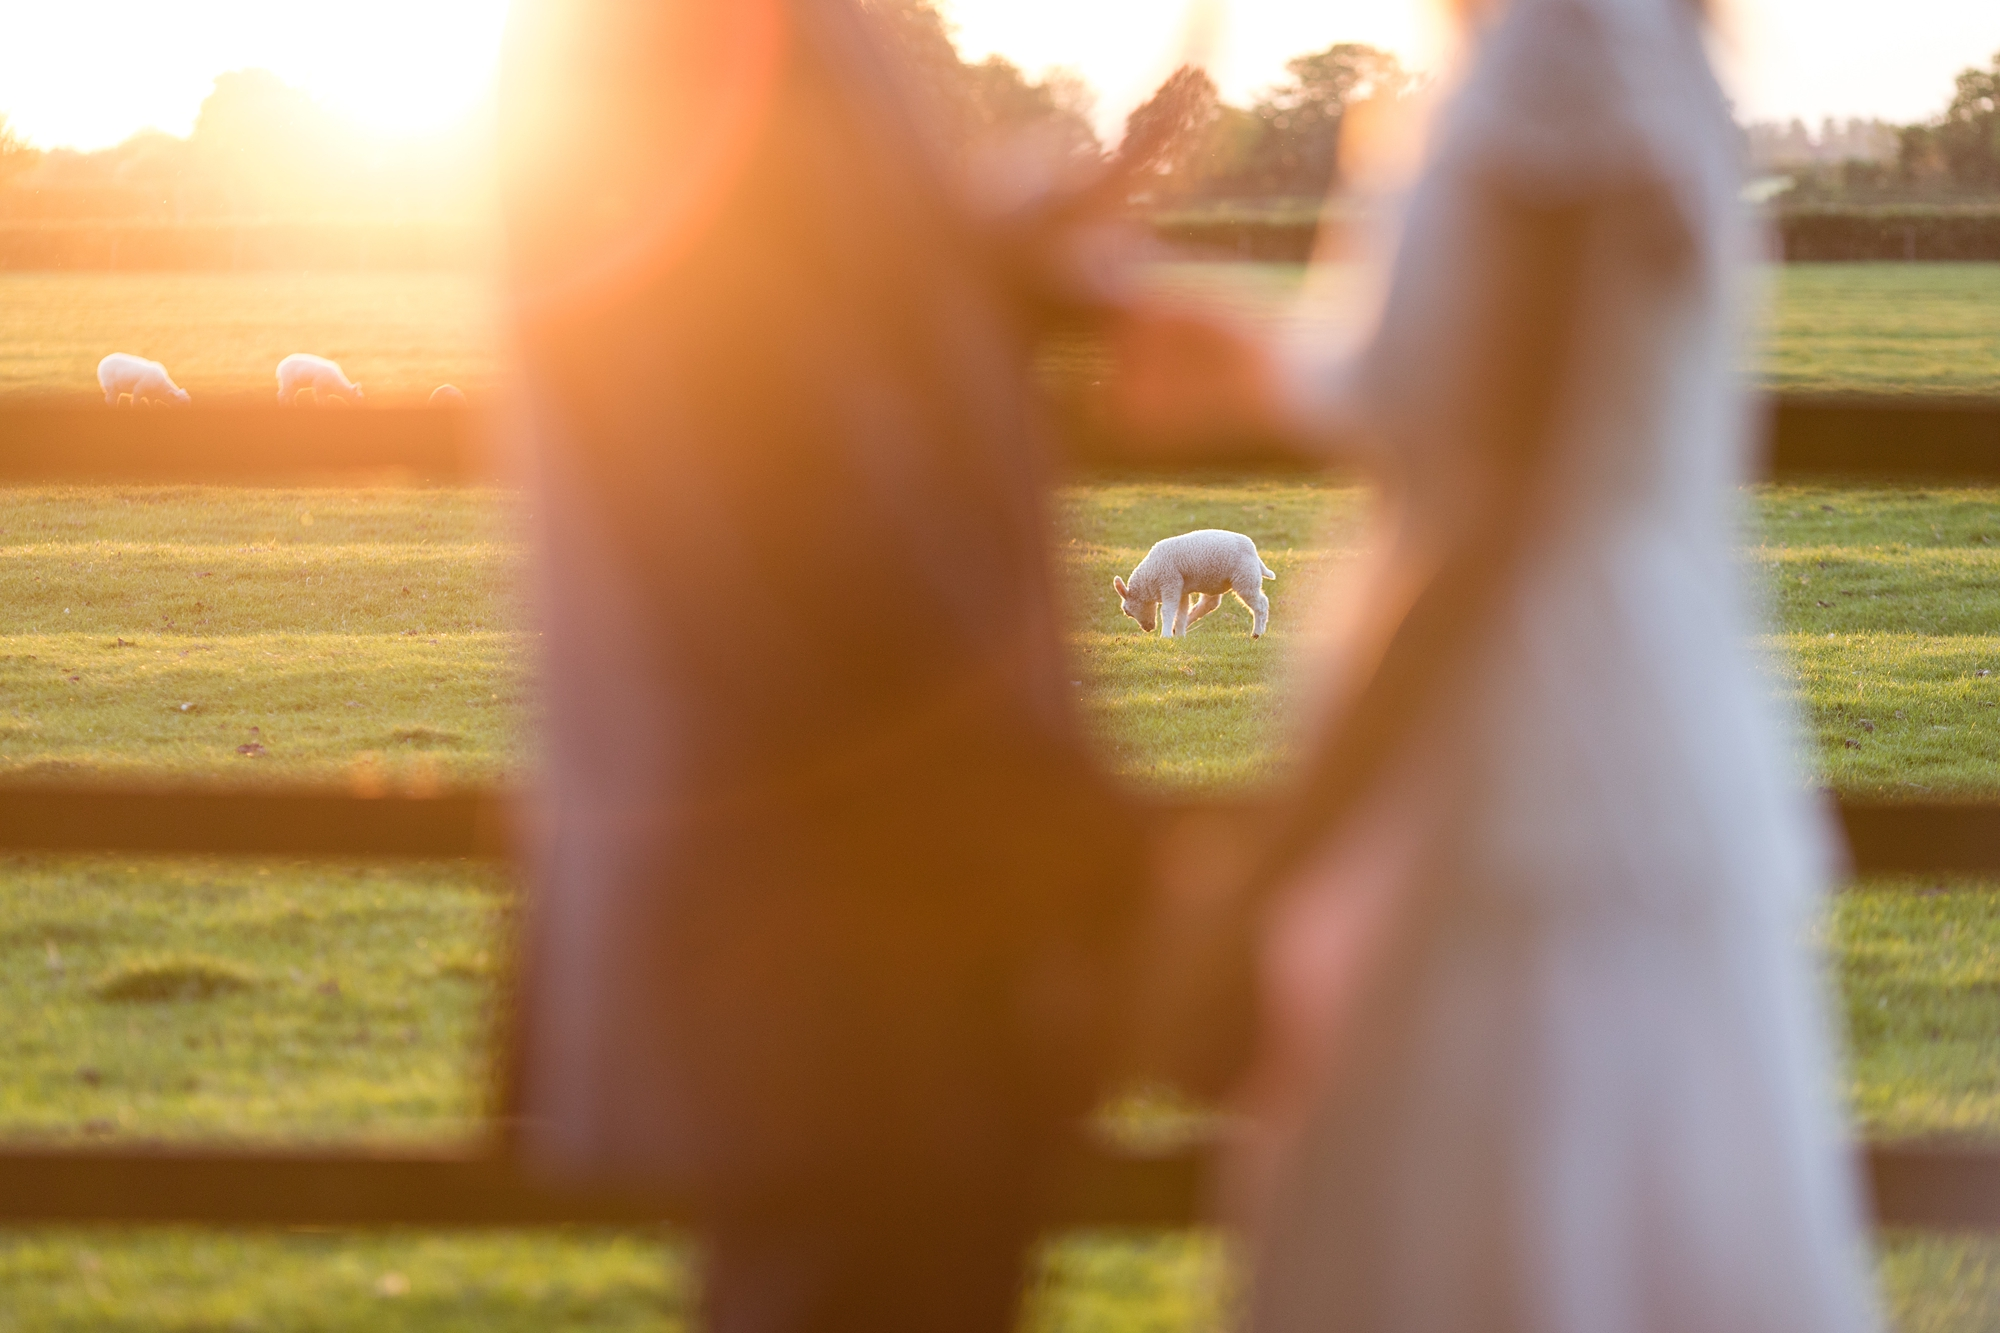 Sheep in background behind wedding couple